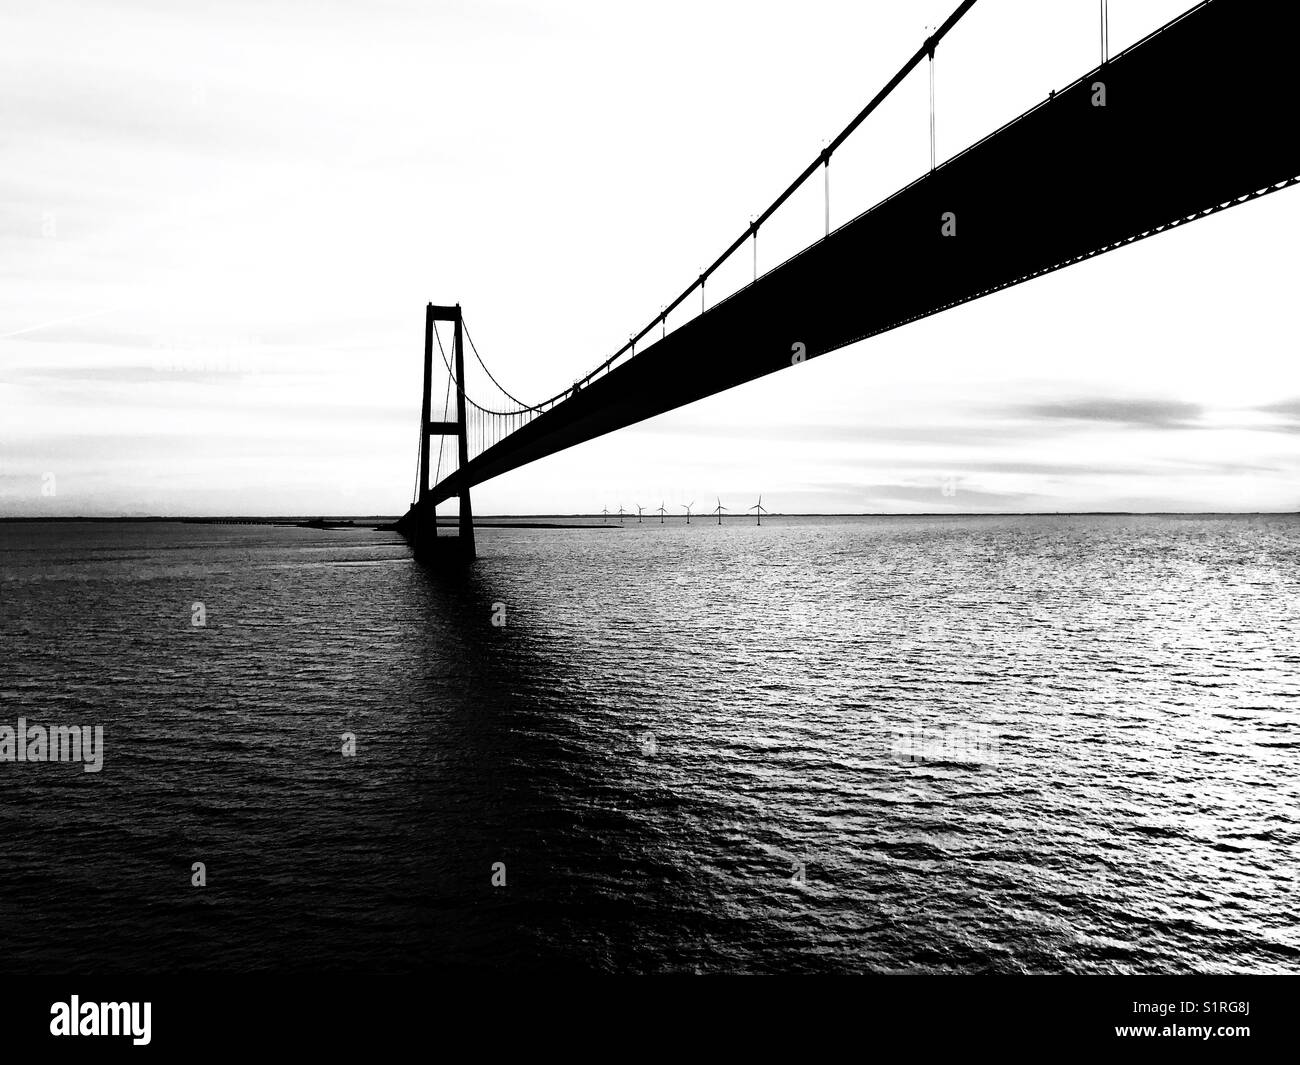 View from cruise ship of the Oresund Bridge linking Denmark and Sweden Stock Photo